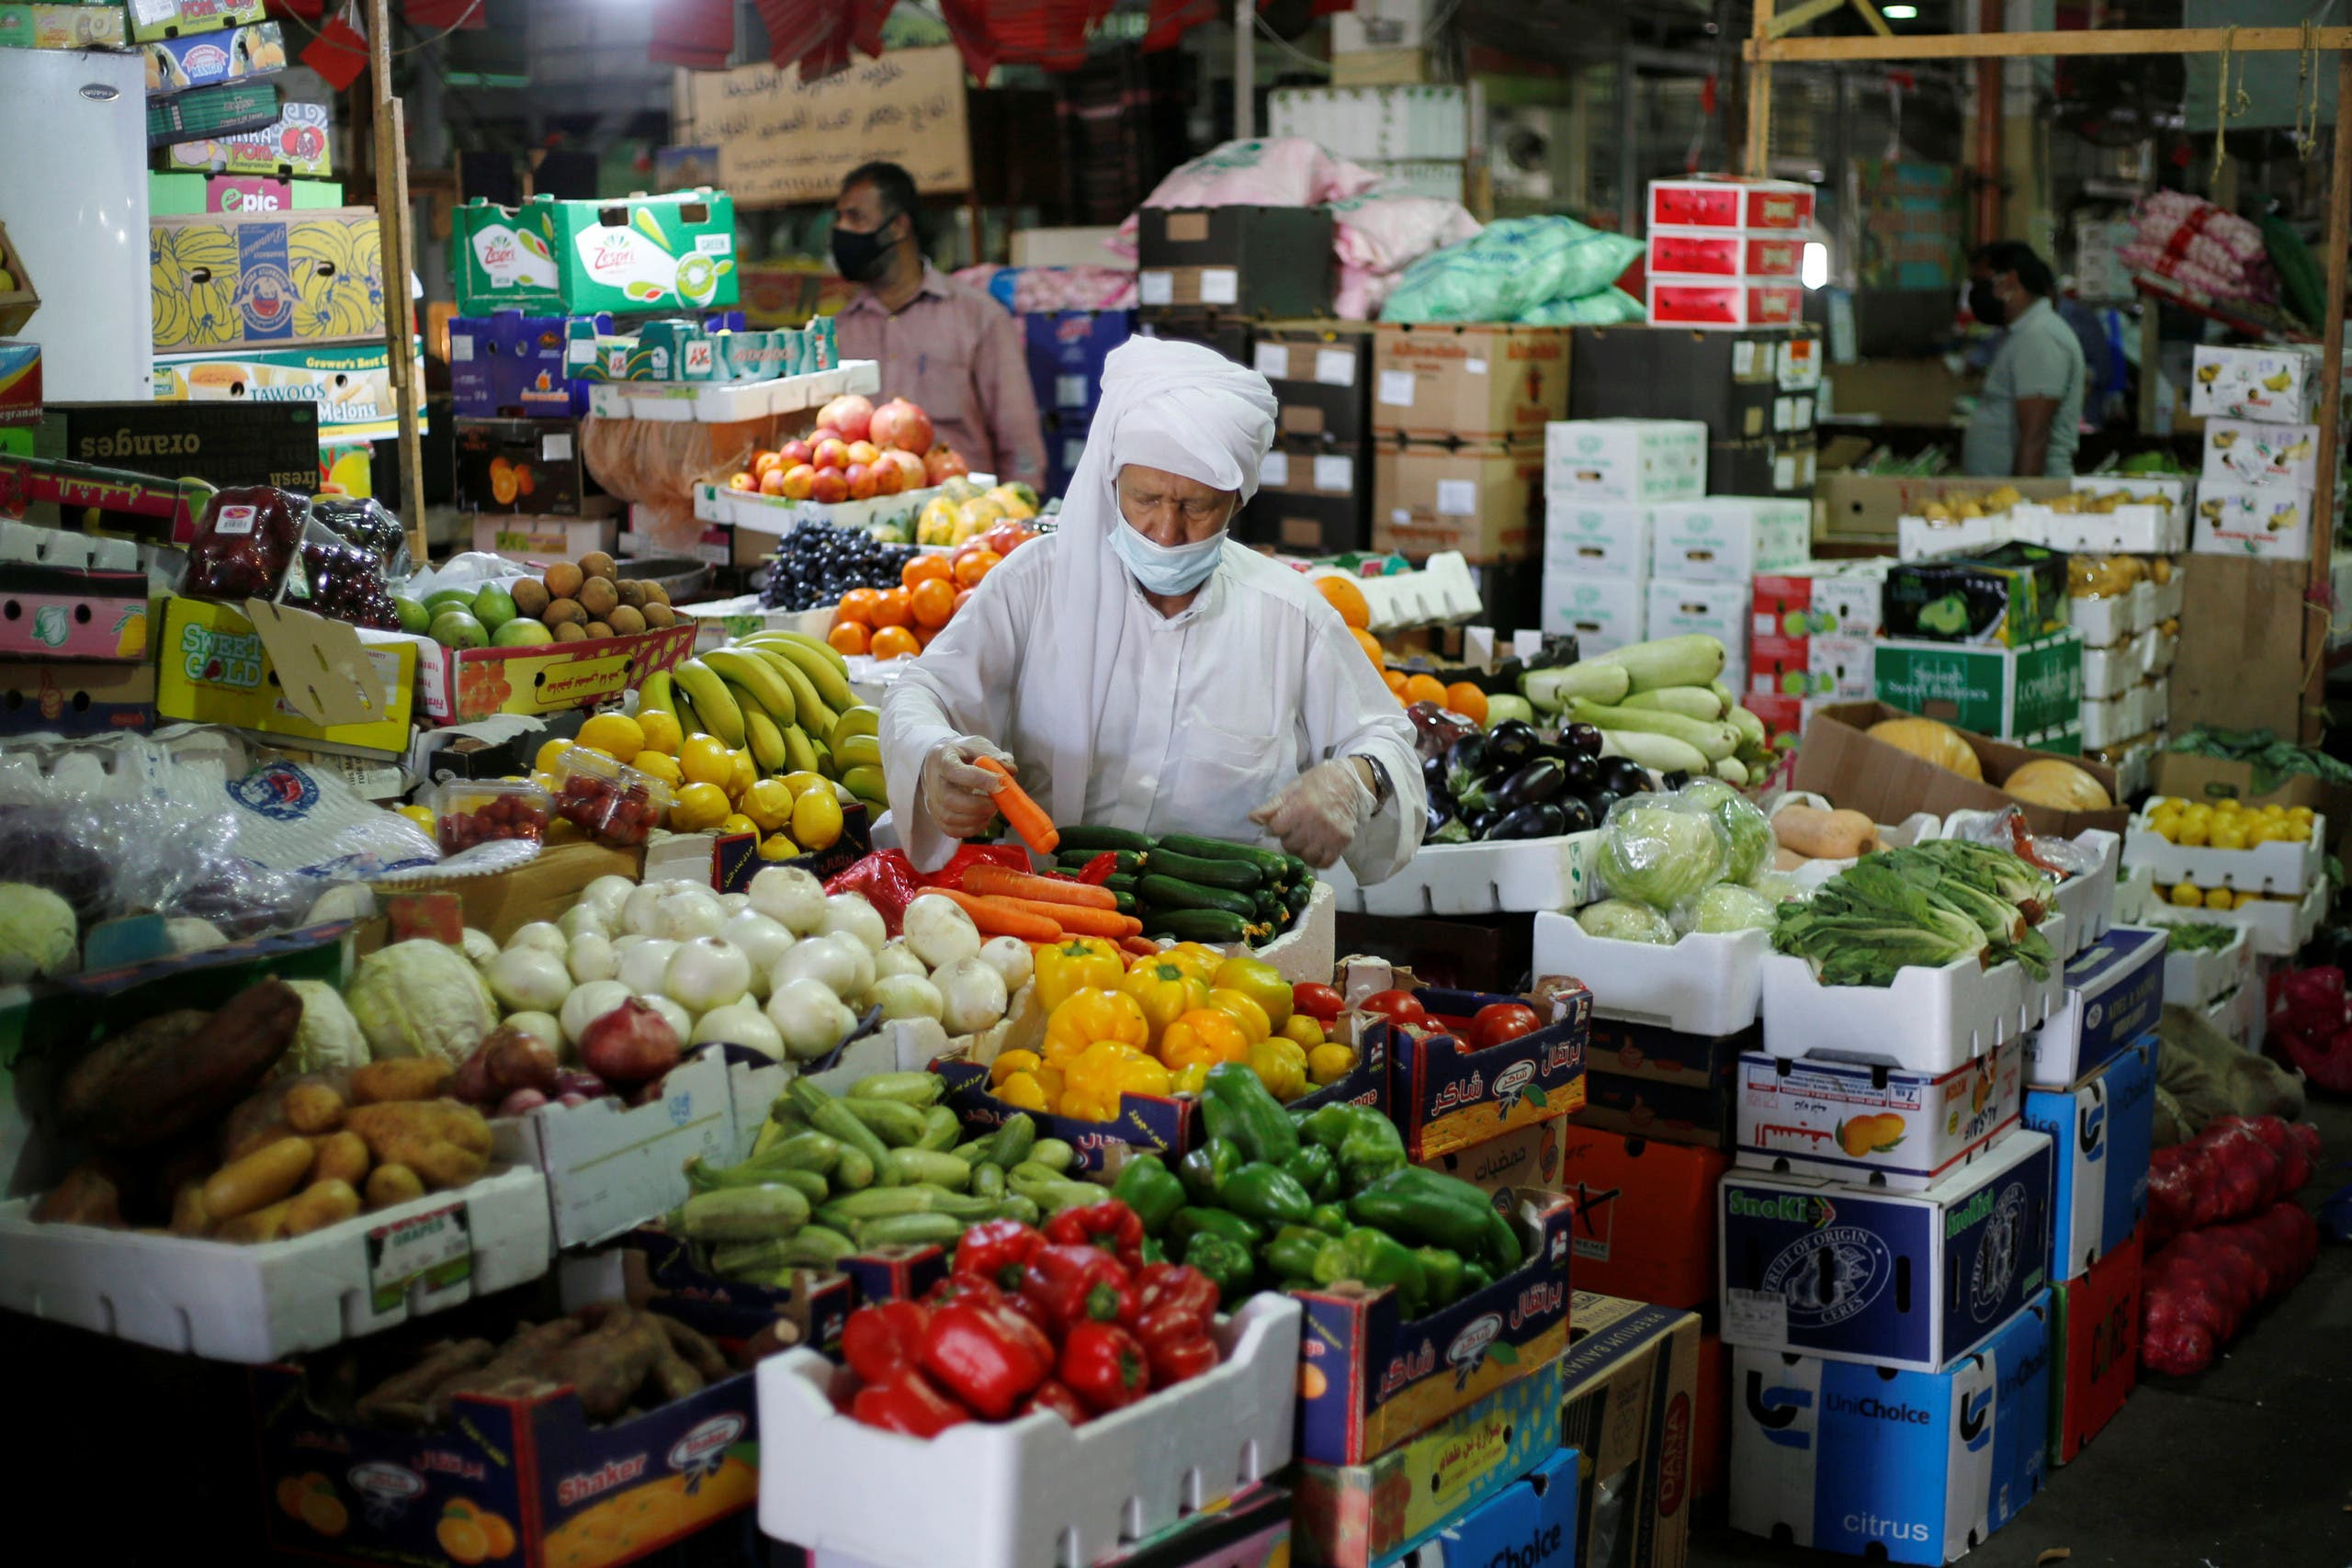 A Bahraini man, wearing a face mask, following the outbreak of the coronavirus disease (COVID-19), shops at a vegetables stand, in Central Market, in Manama, Bahrain, June 13, 2020. (Reuters)